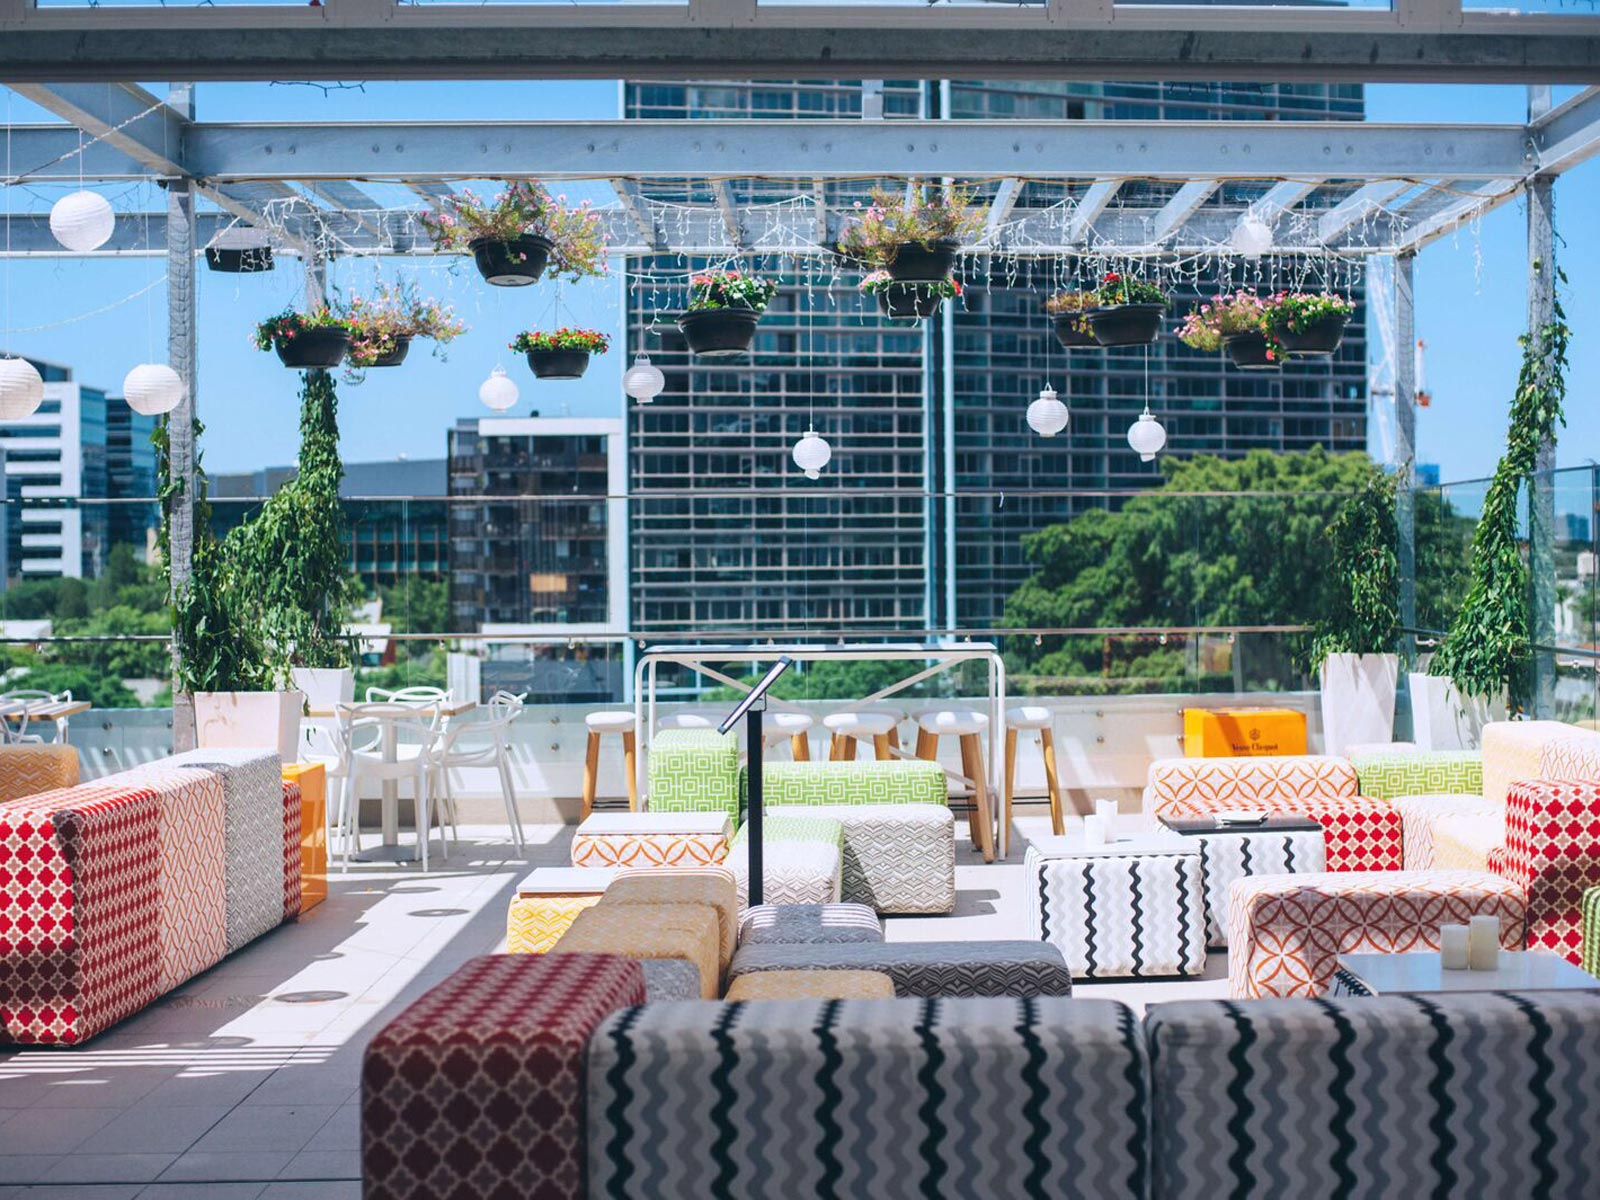 Brisbane Rooftop Bars Are up There with the Best | Qantas Travel ...